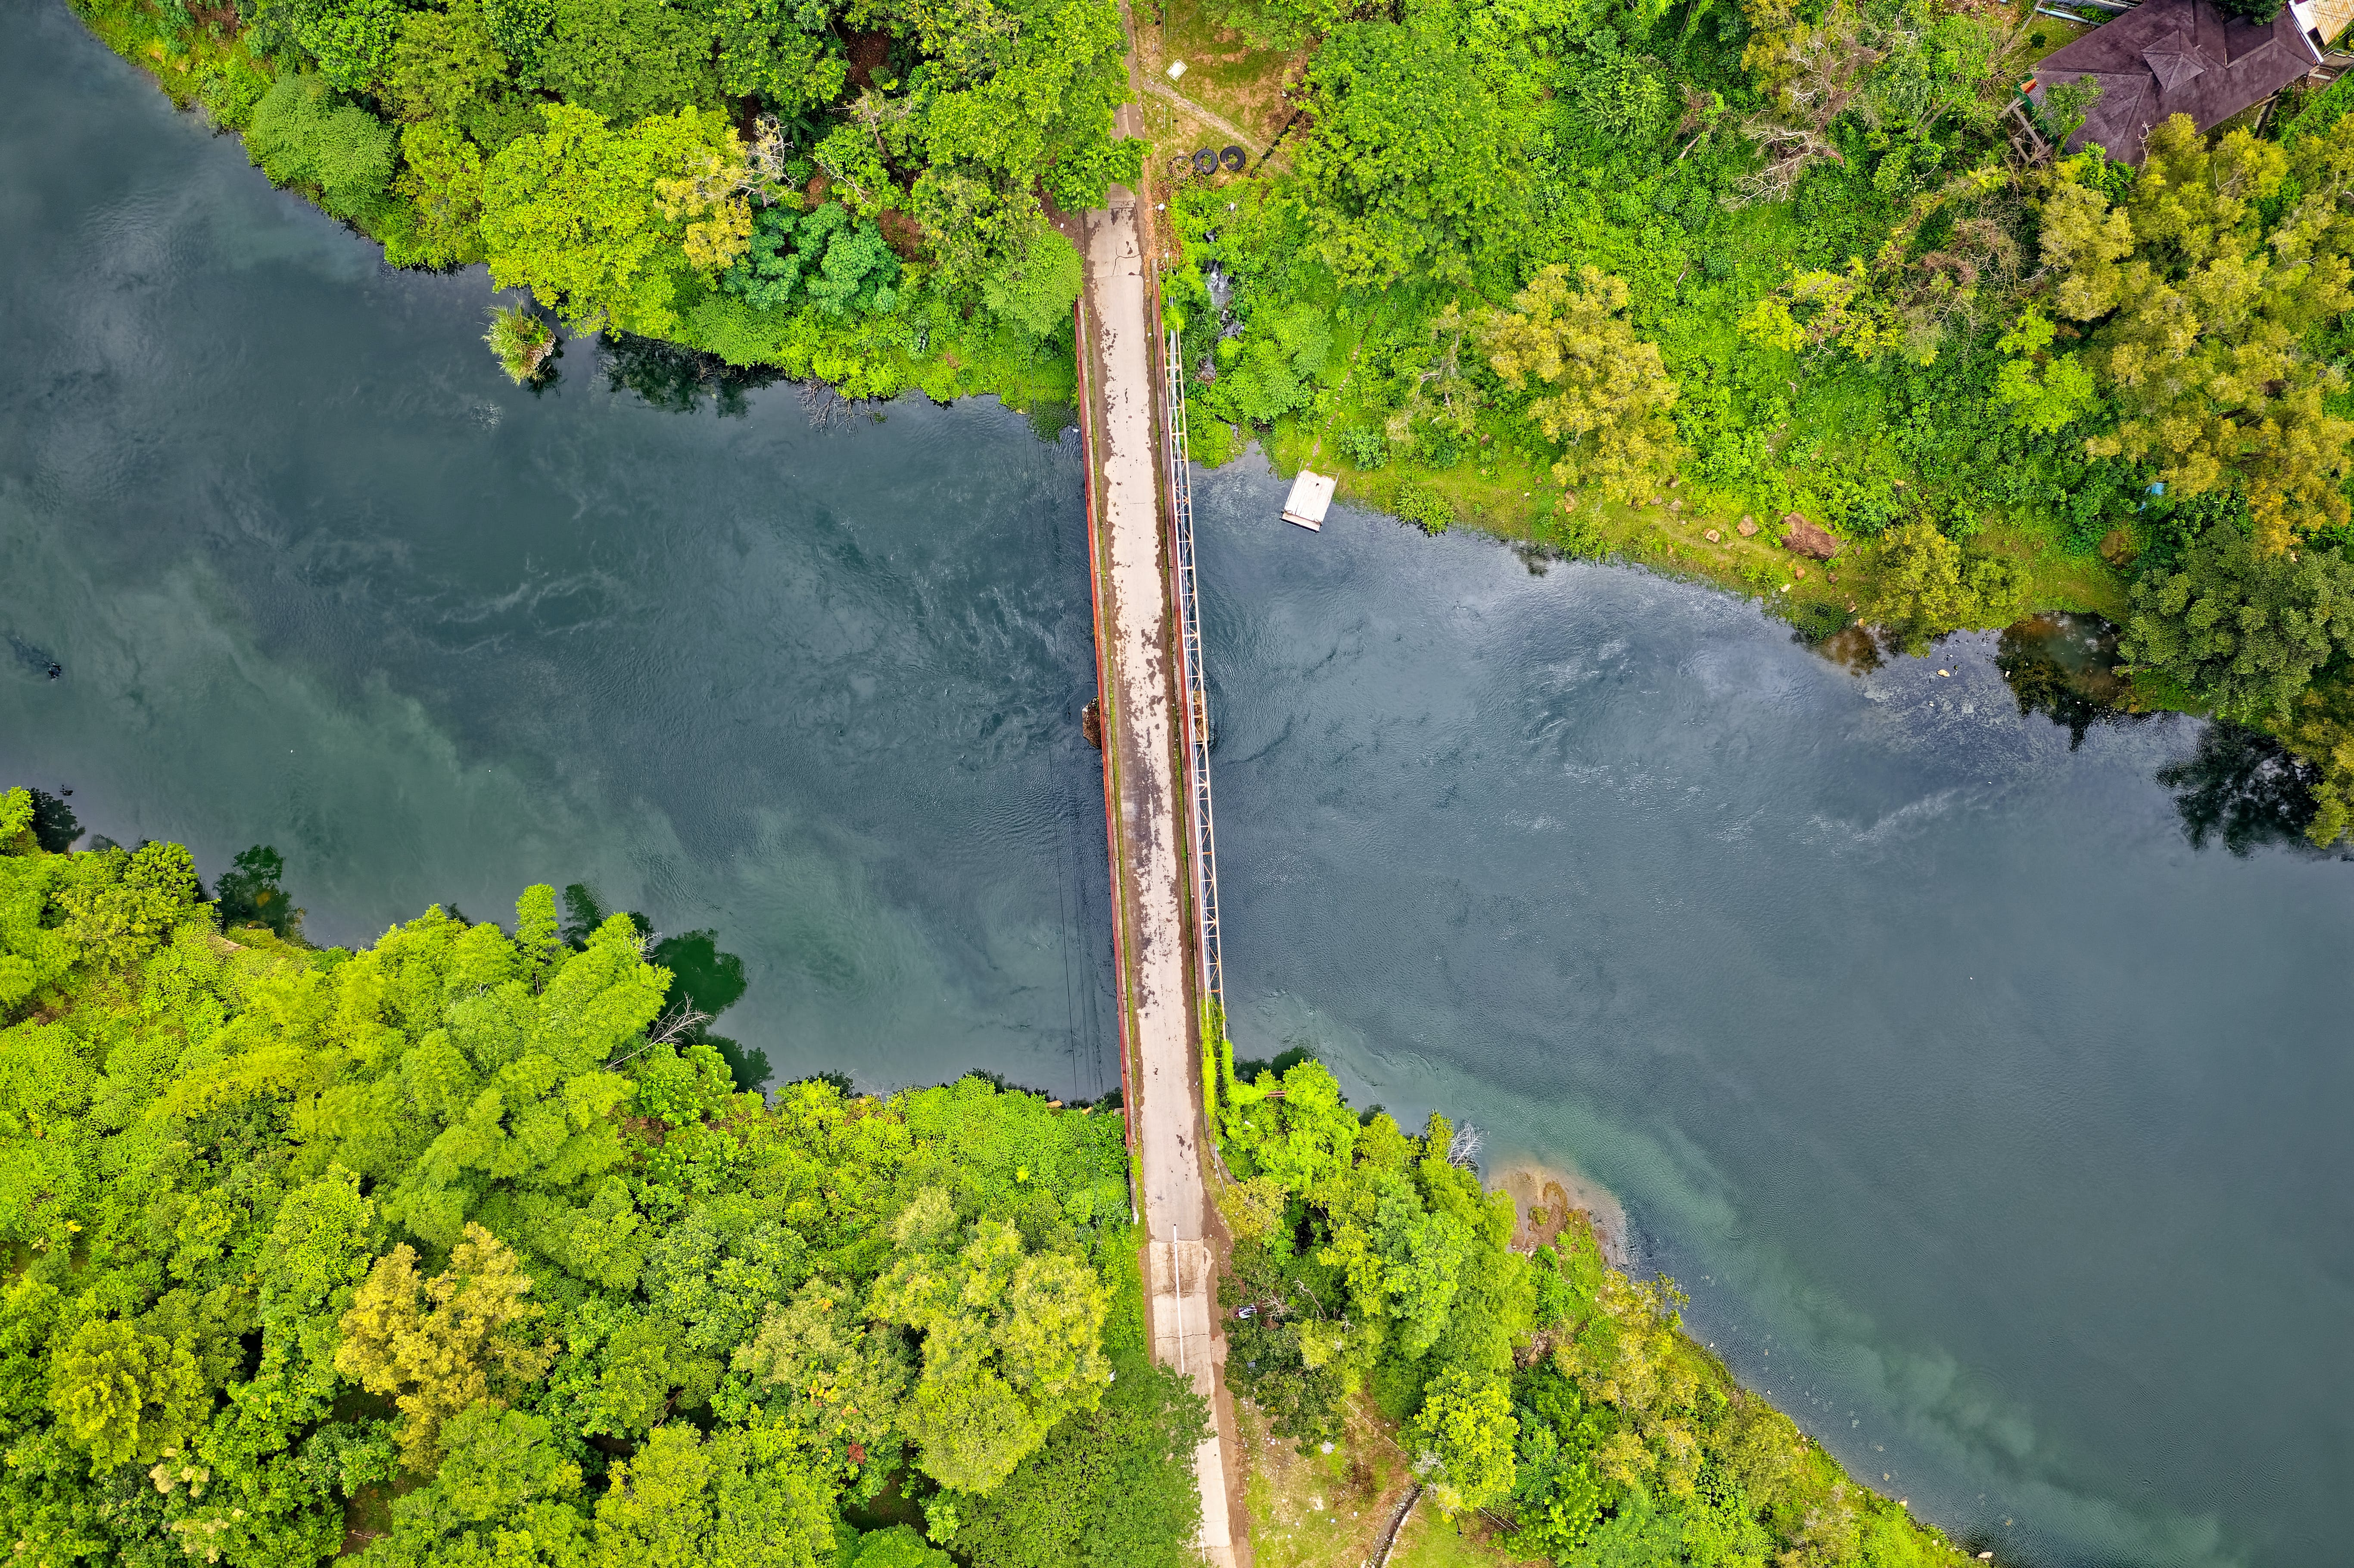 Aerial Photo of River and Trees